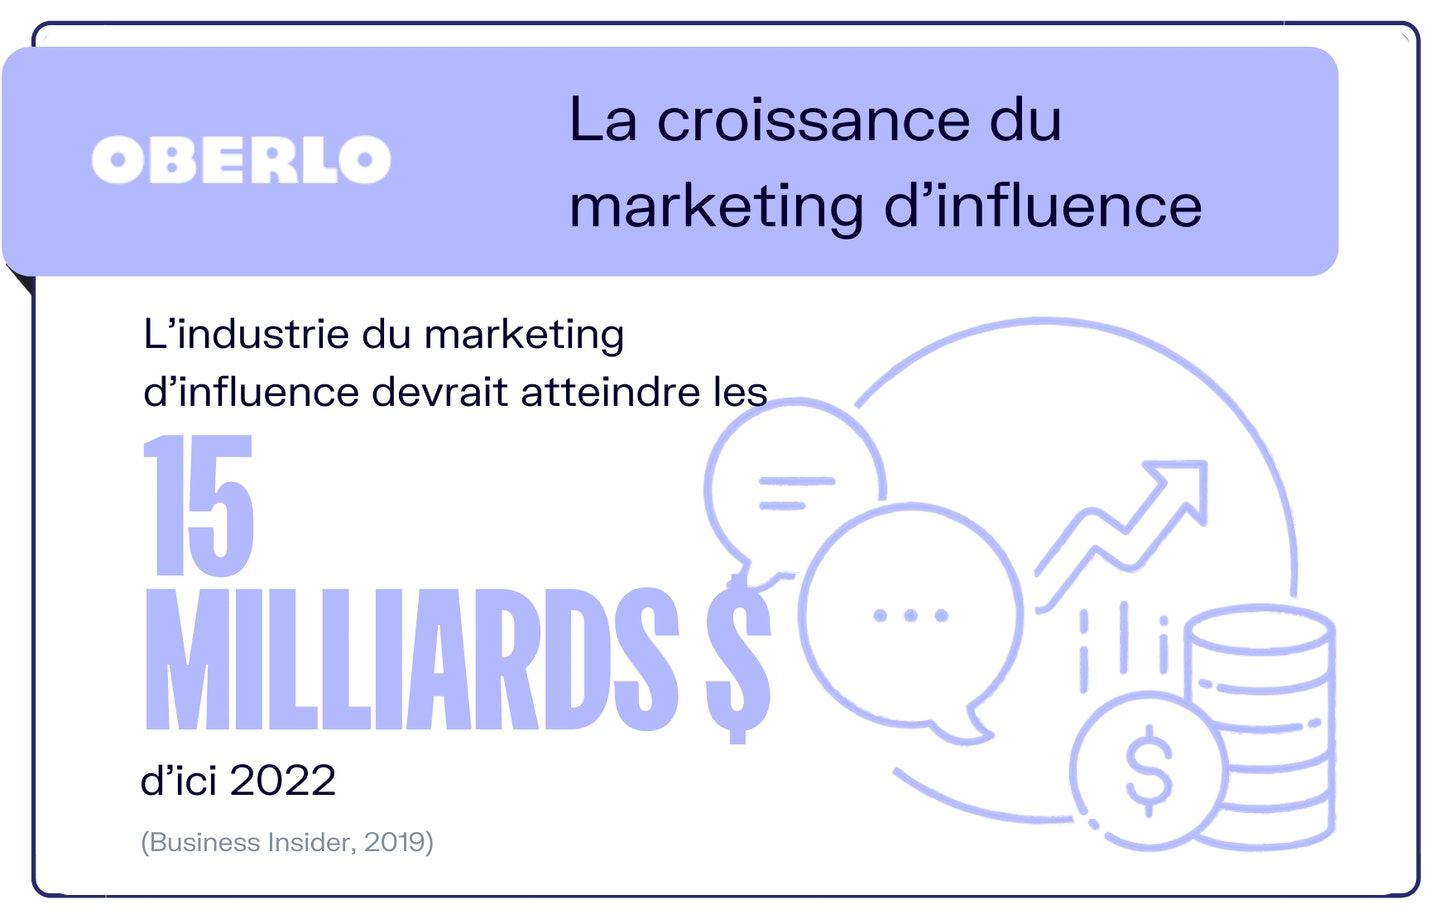 chiffres marketing d'influence